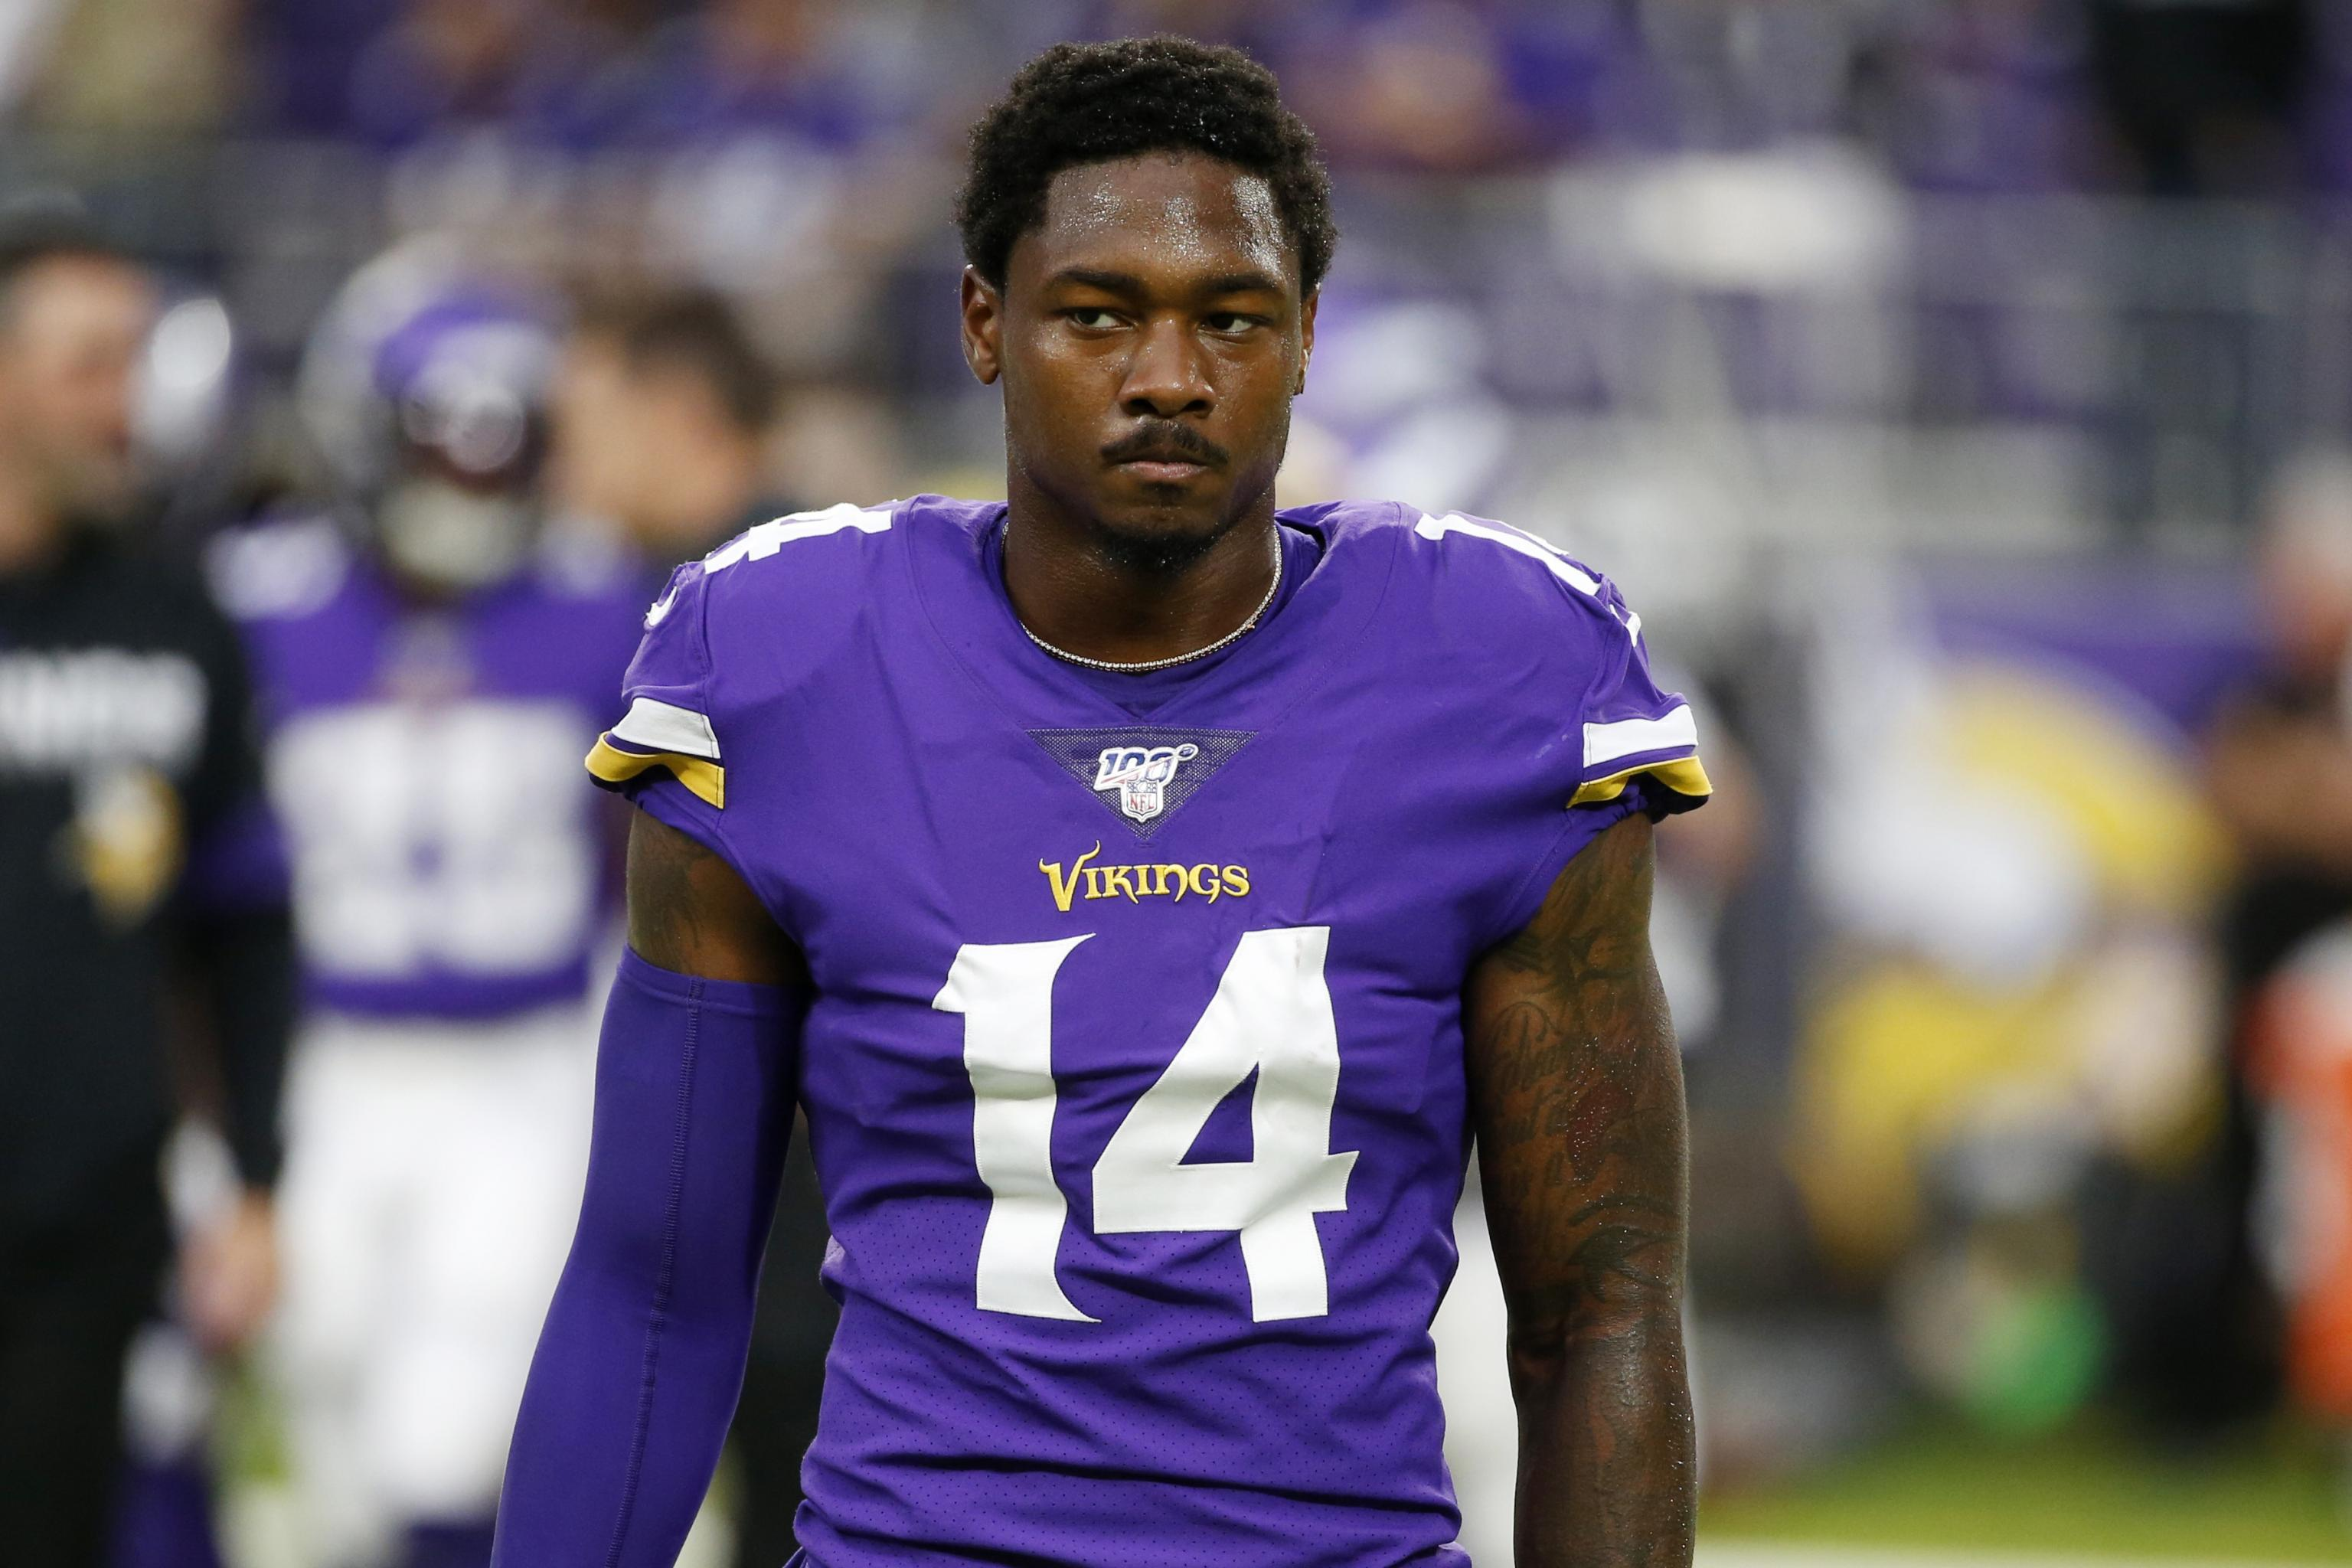 Vikings Have Absolutely No Reason to Trade Stefon Diggs Despite ...